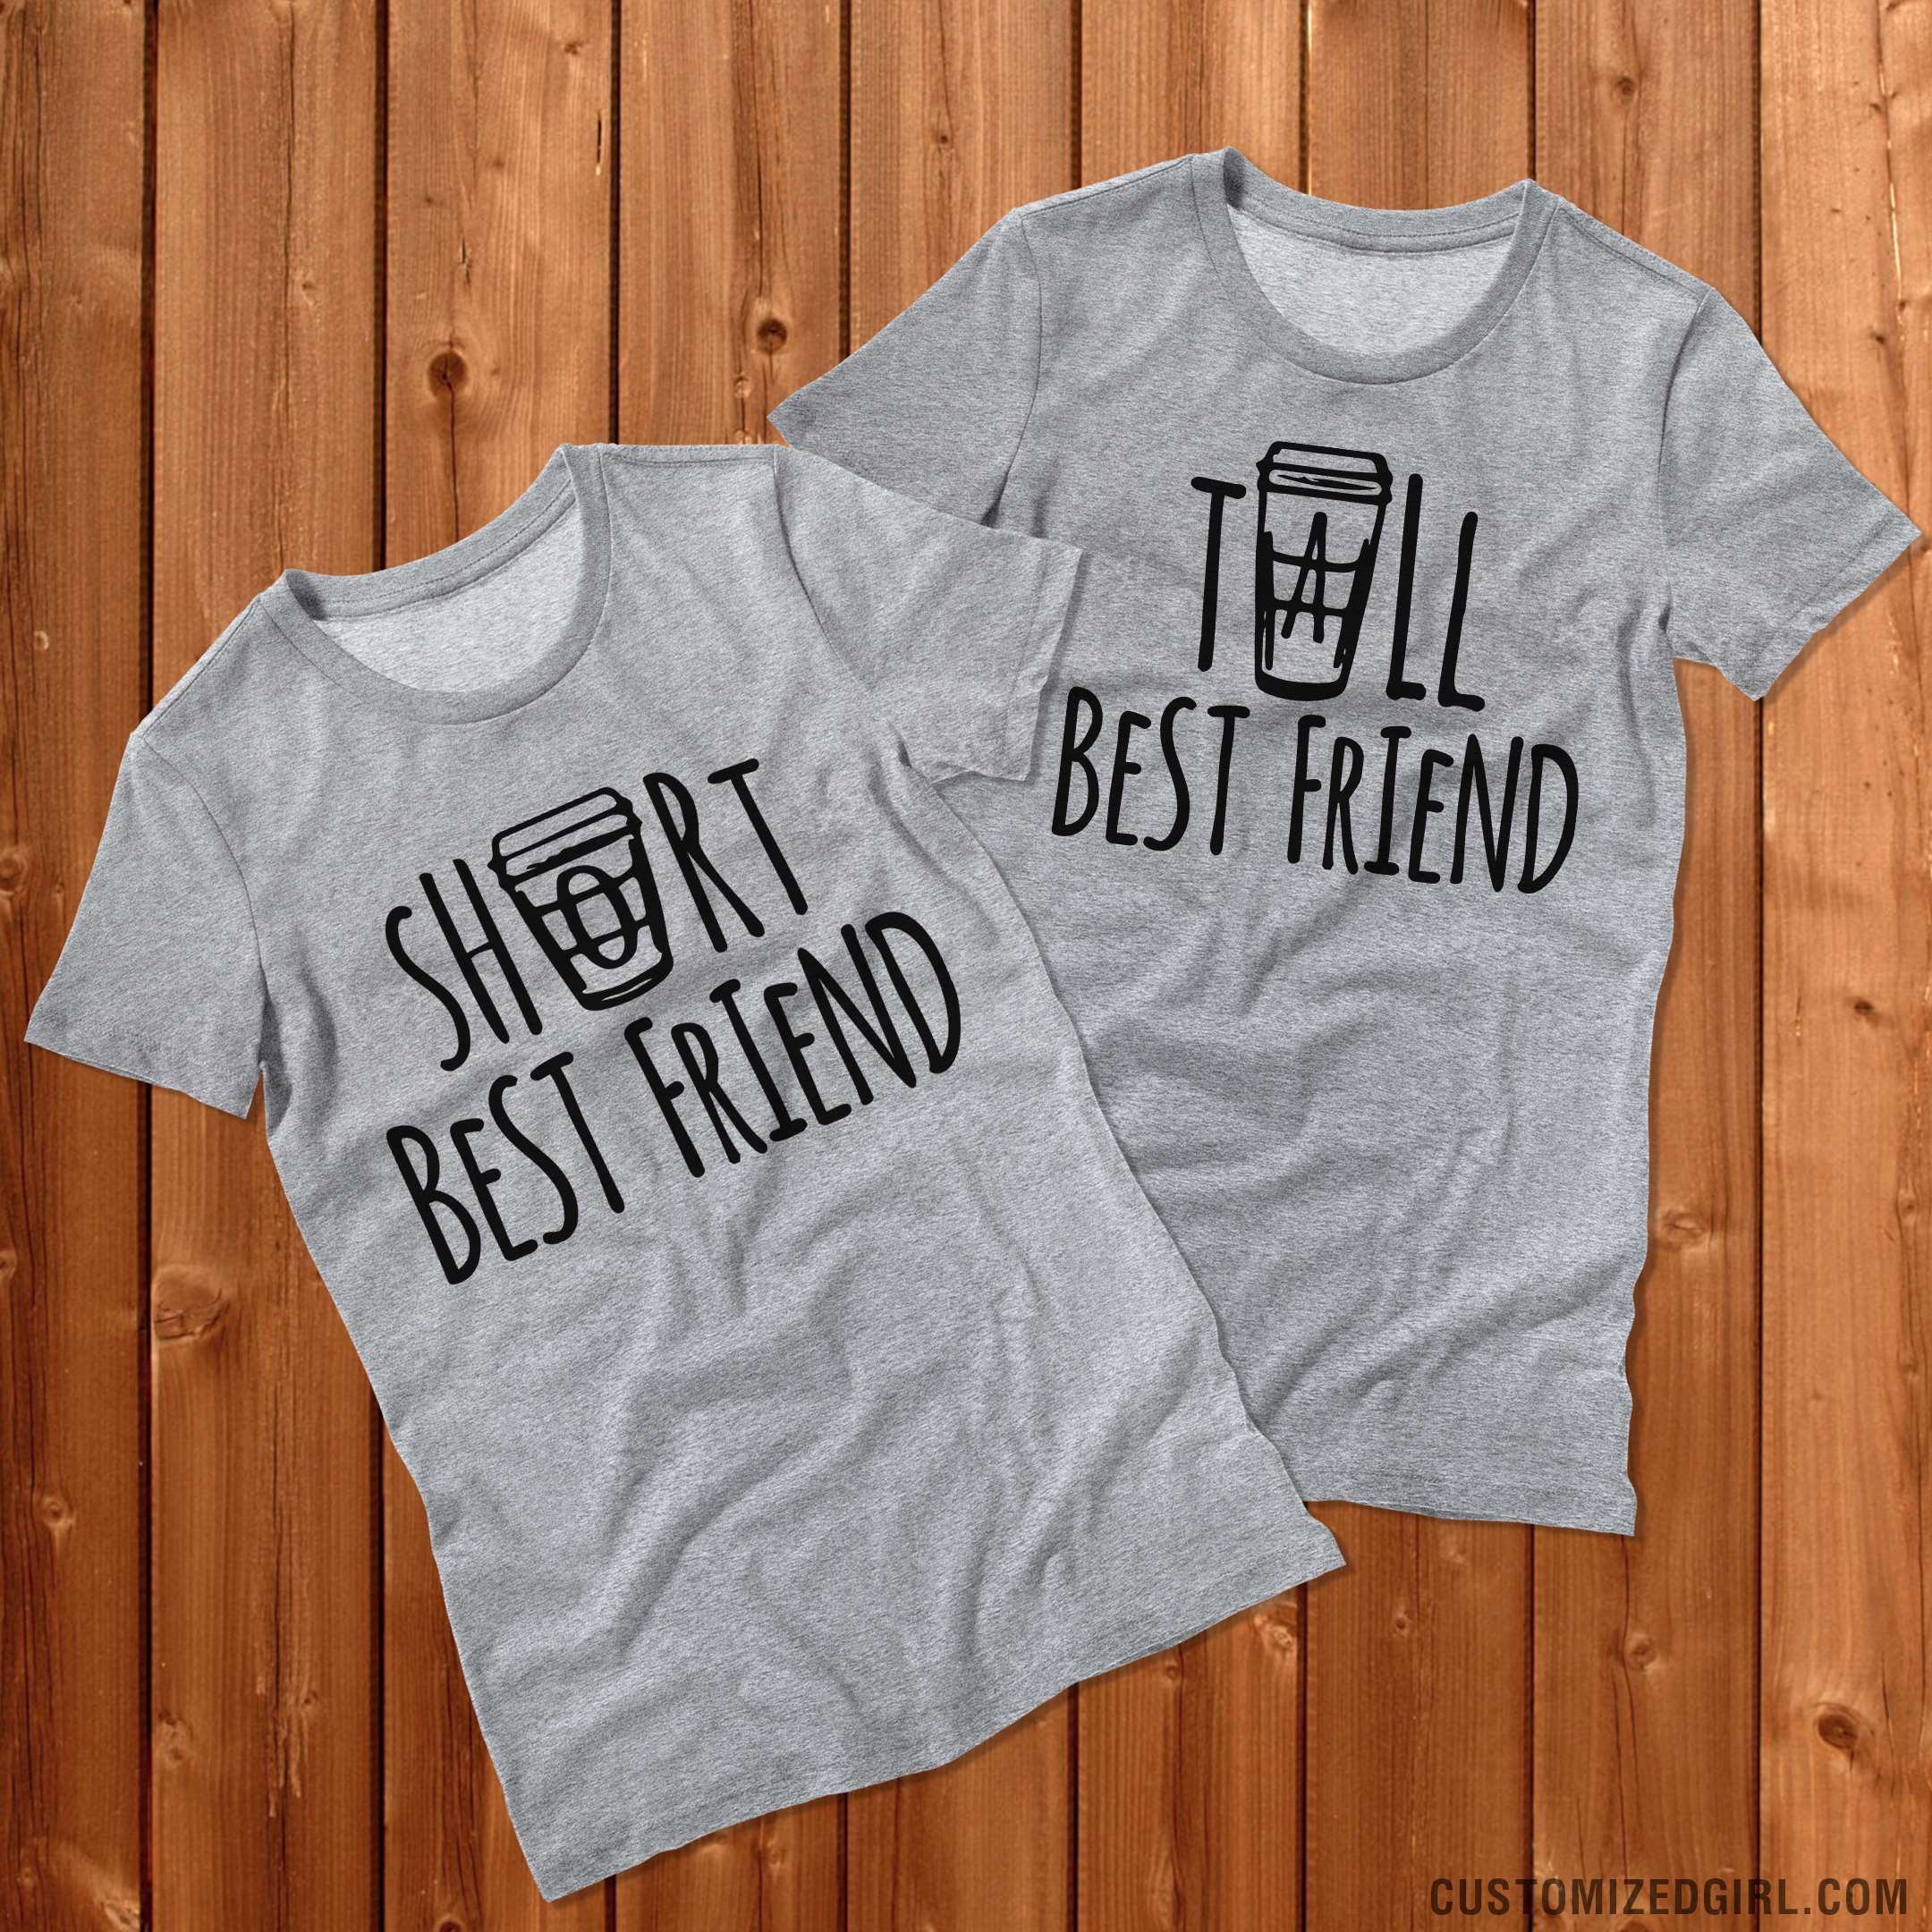 Short and Tall Best Friend Shirts